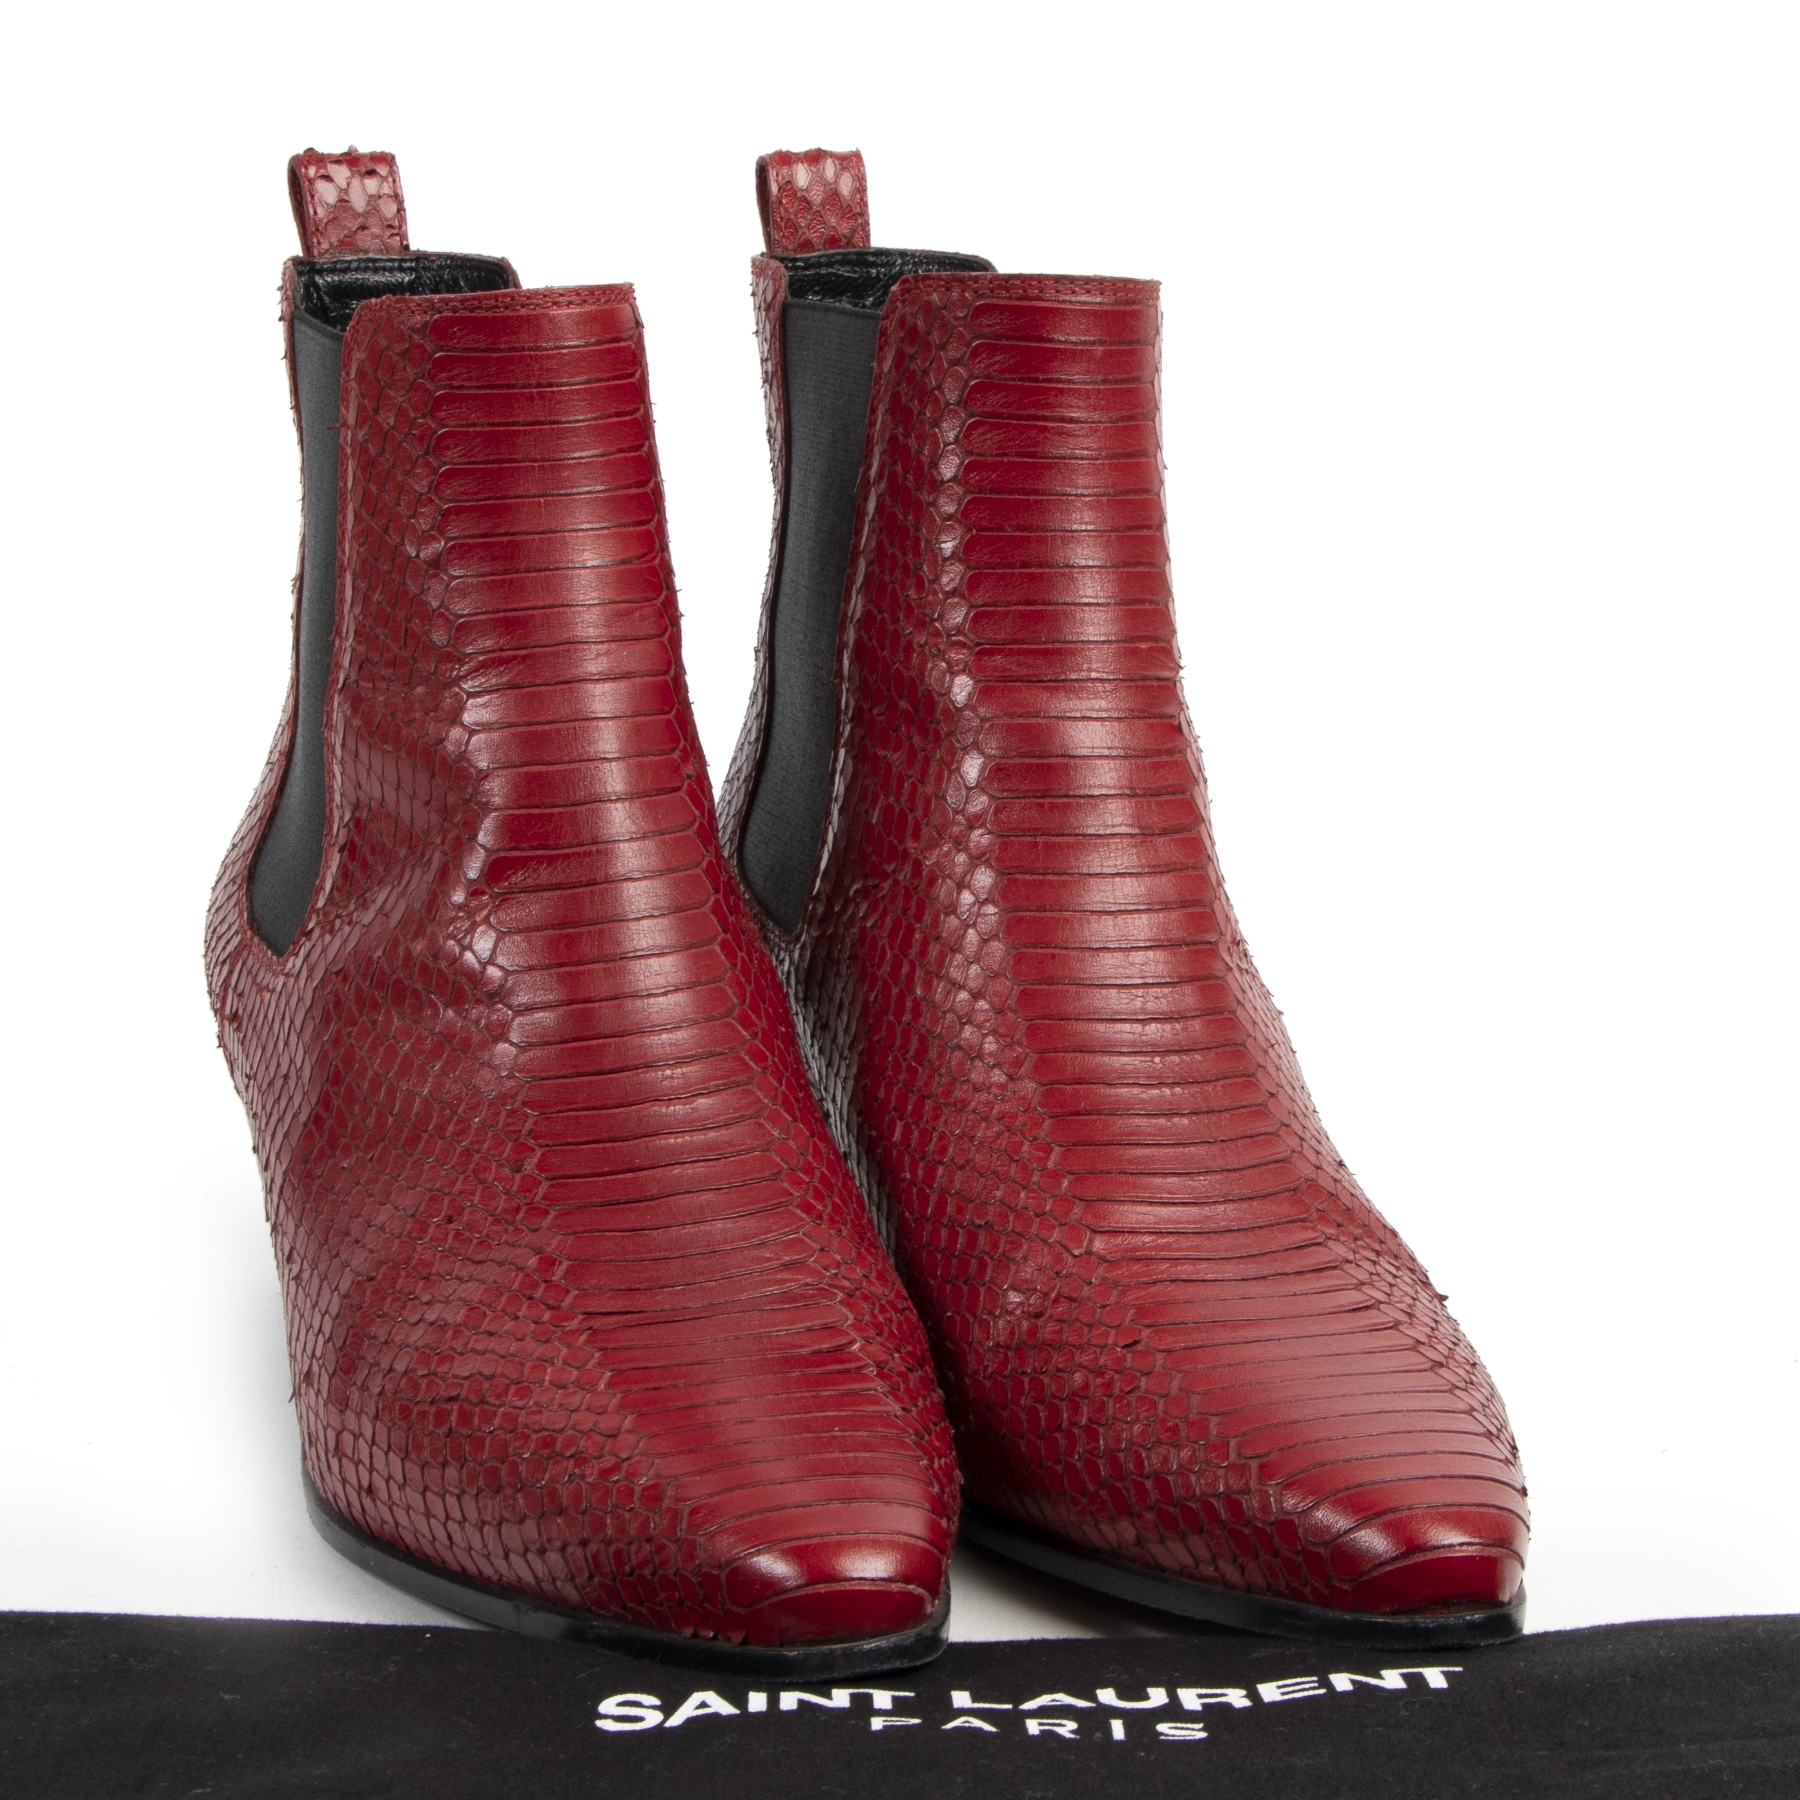 Authentic secondhand Saint Laurent Red Python Ankle Boots - Size 39 designer shoes luxury vintage webshop fashion high end designer brands shoes ankle boots